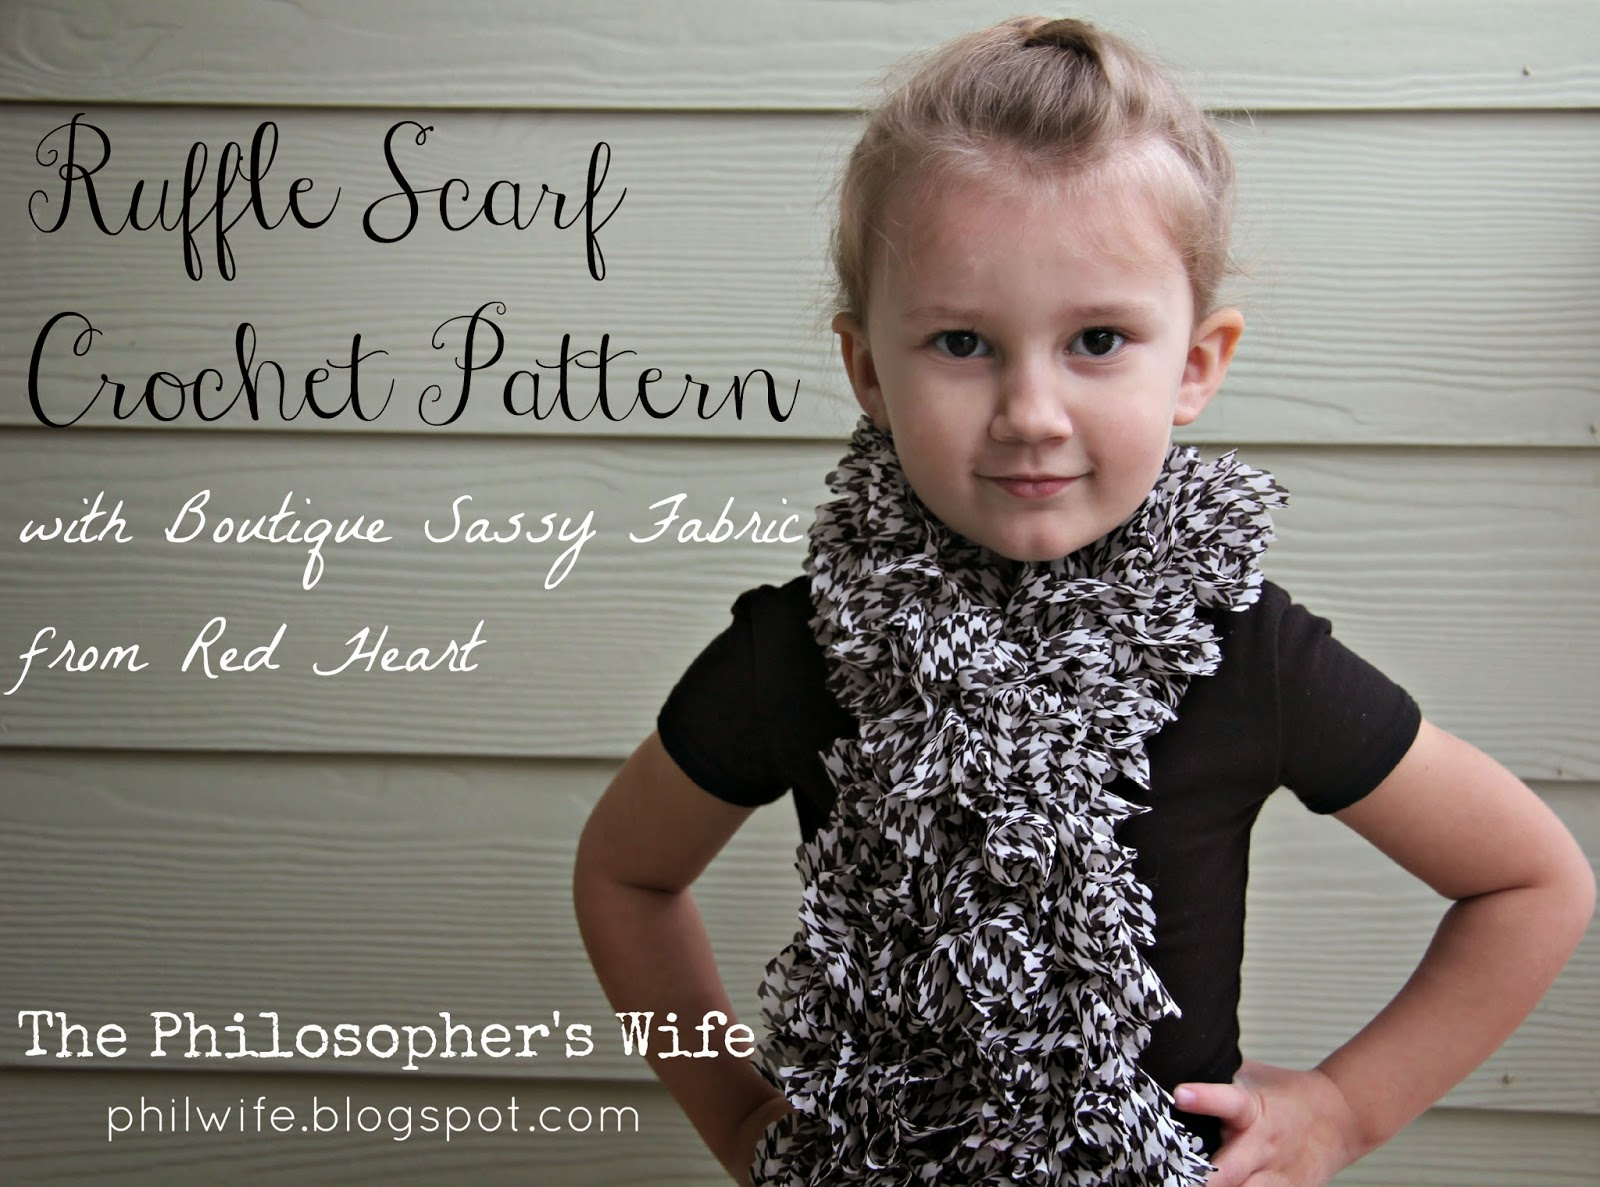 The Philosopher\'s Wife: Ruffle Scarf Crochet Pattern with Boutique ...